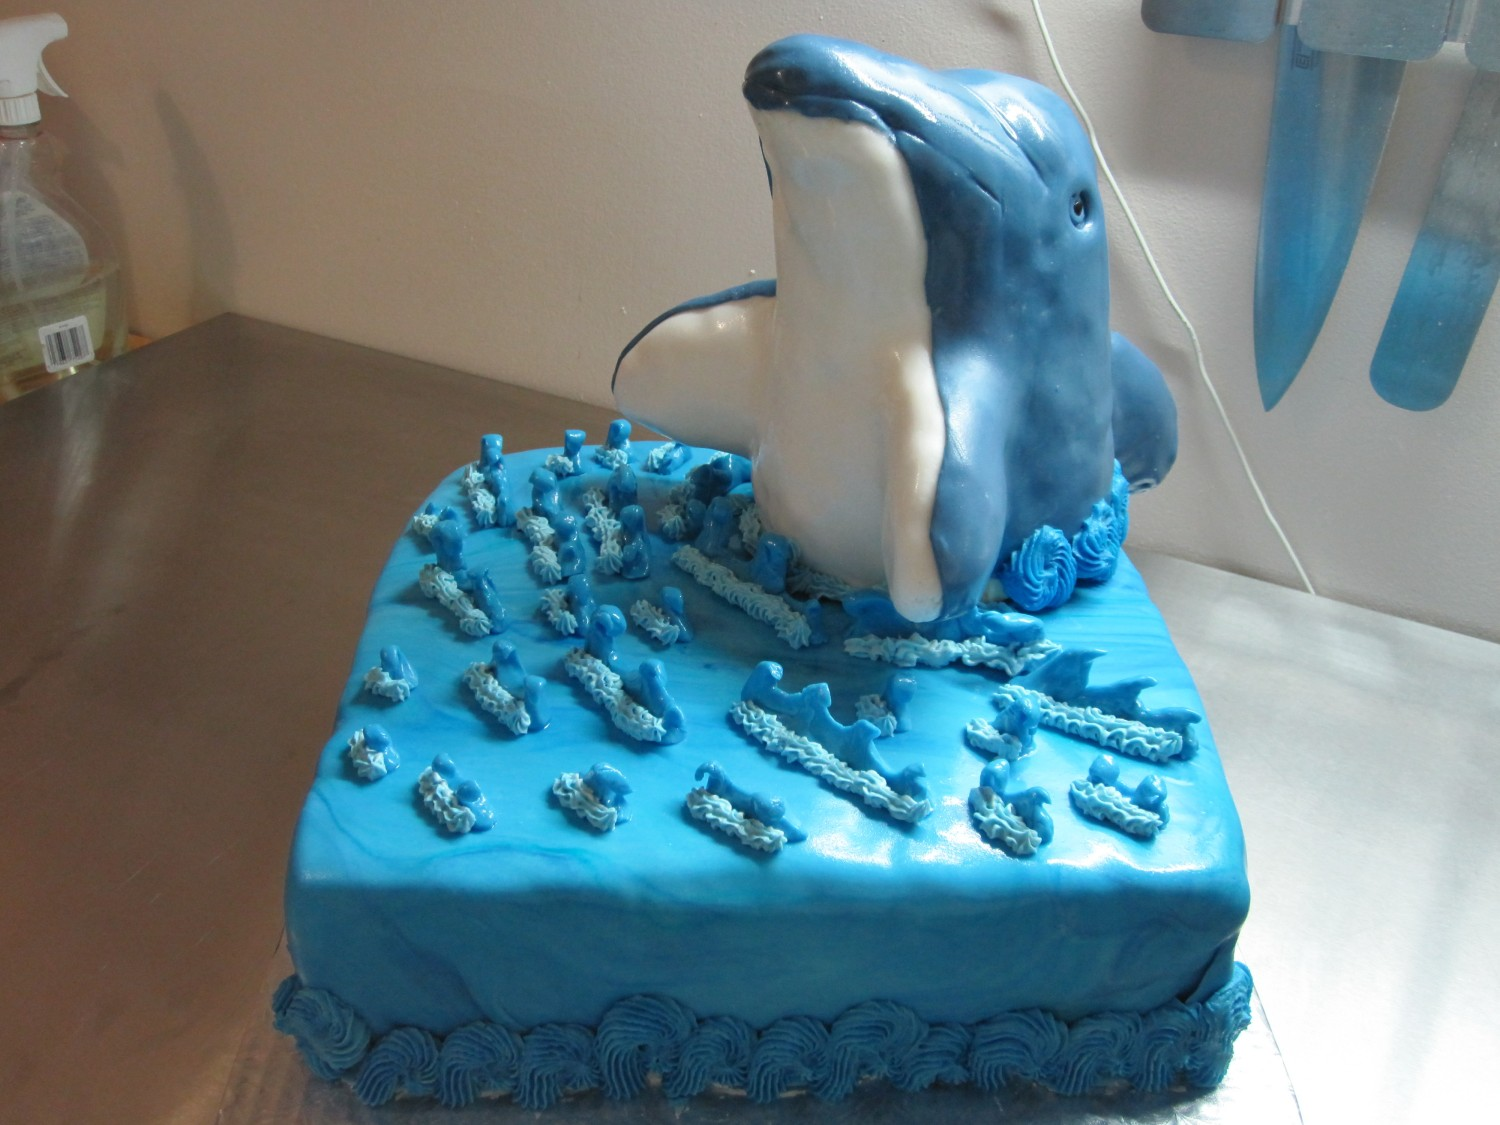 Cake Images In 3d : 3D DOLPHIN CAKE Welcome to Cakester.ca!